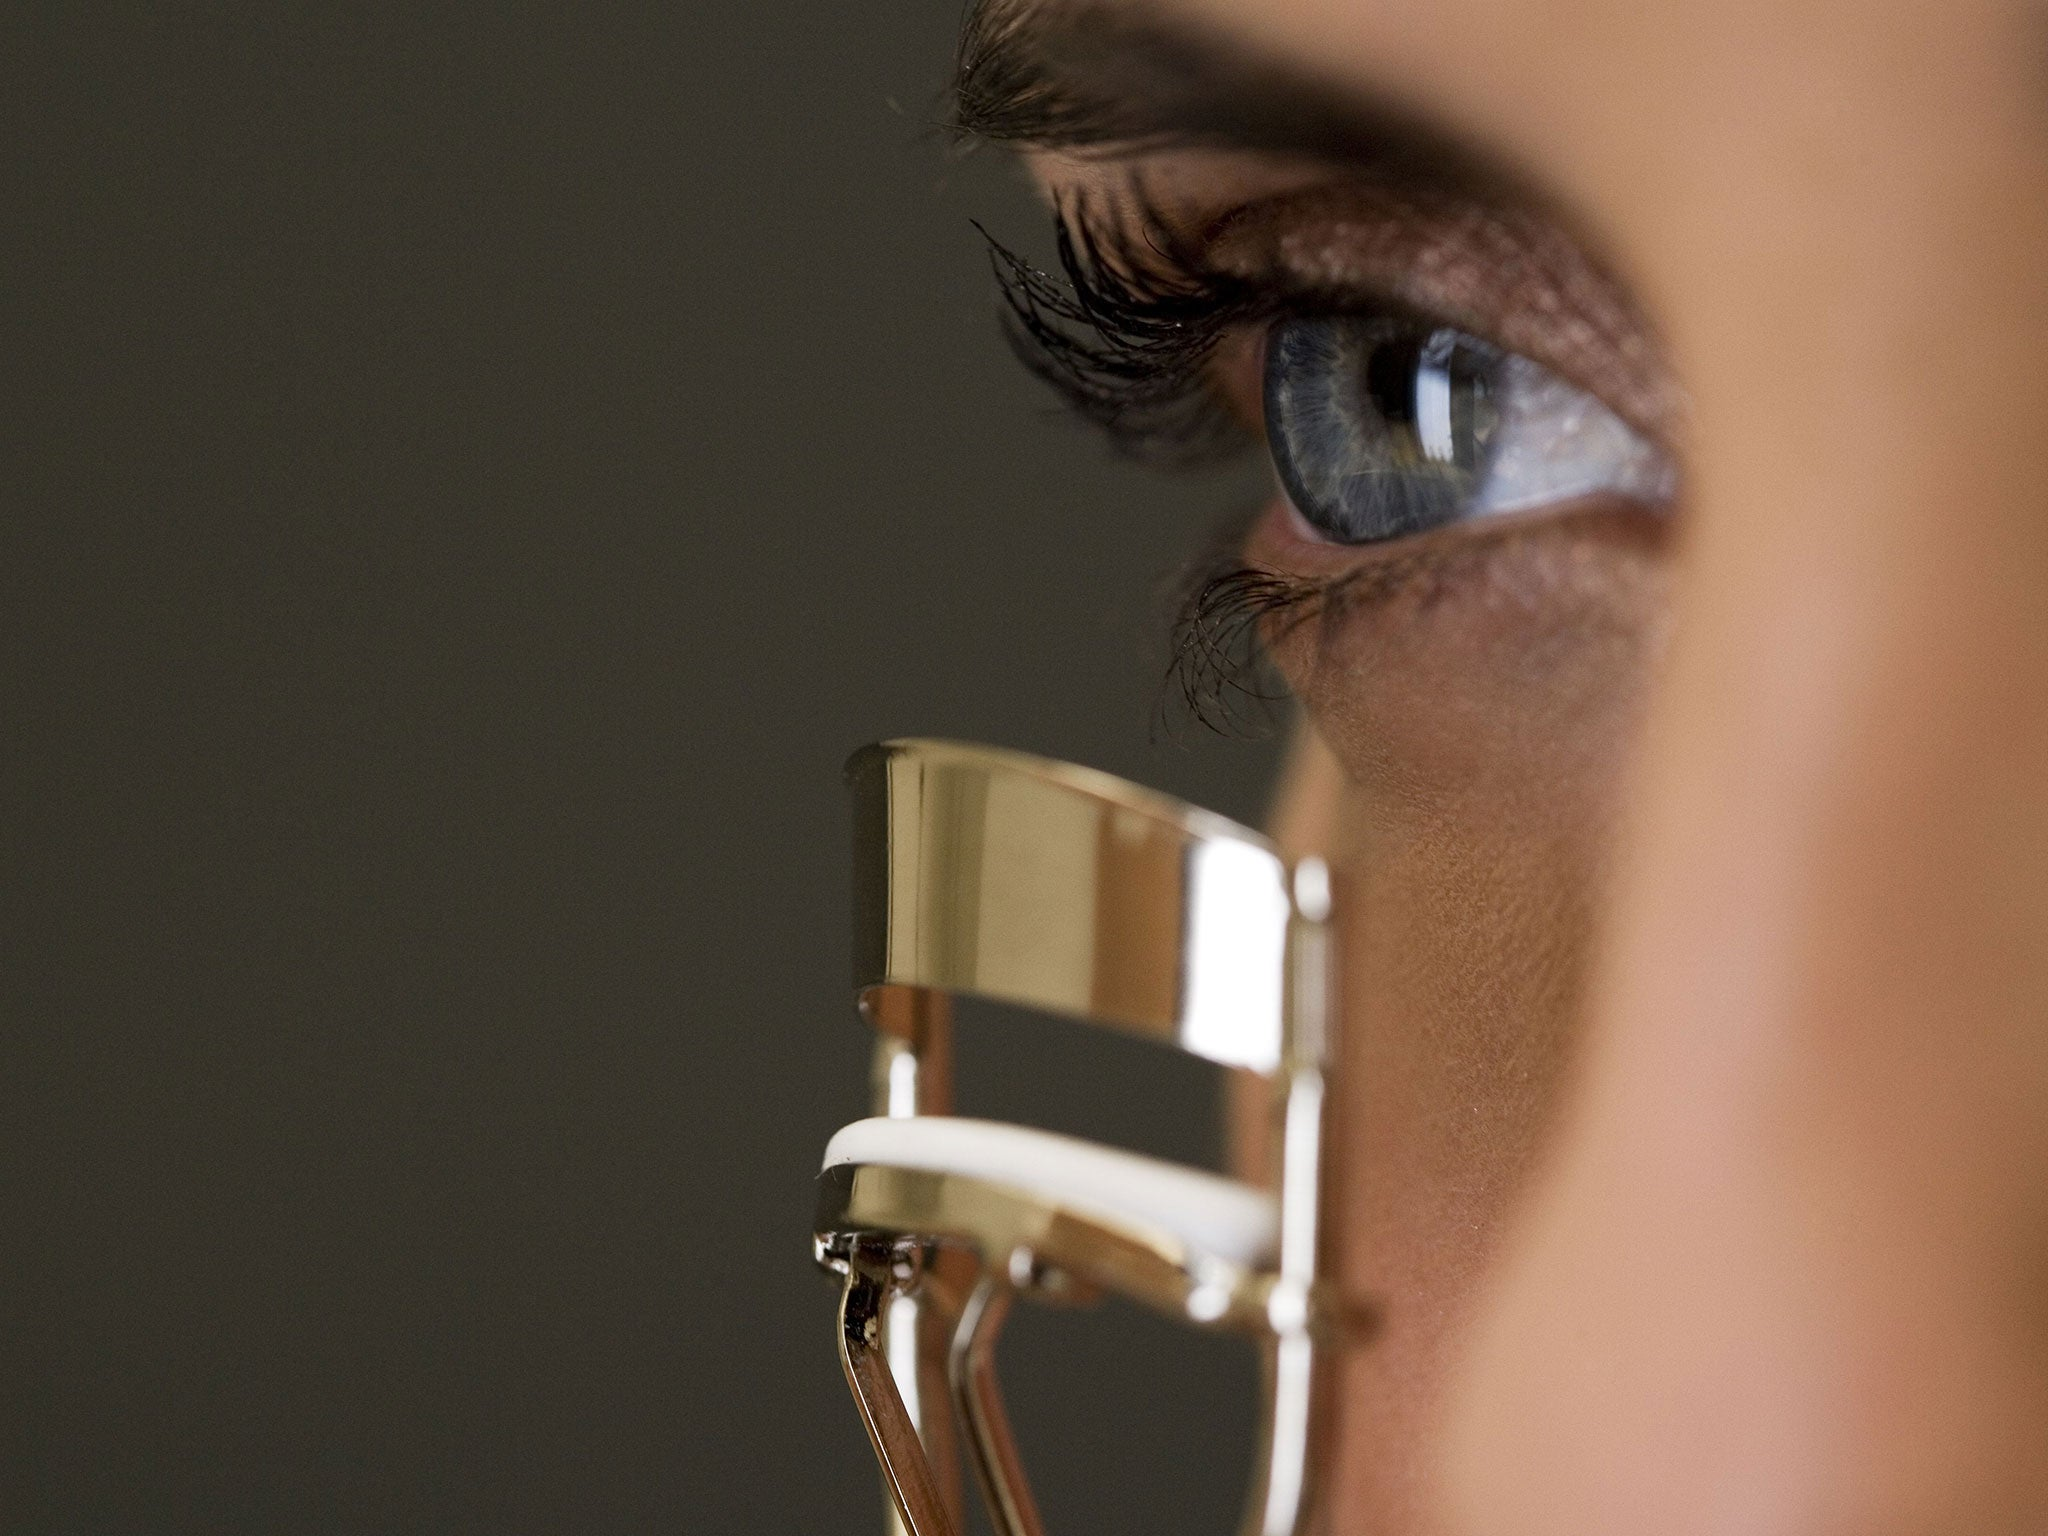 Top 10 Eyelash Curlers The Independent